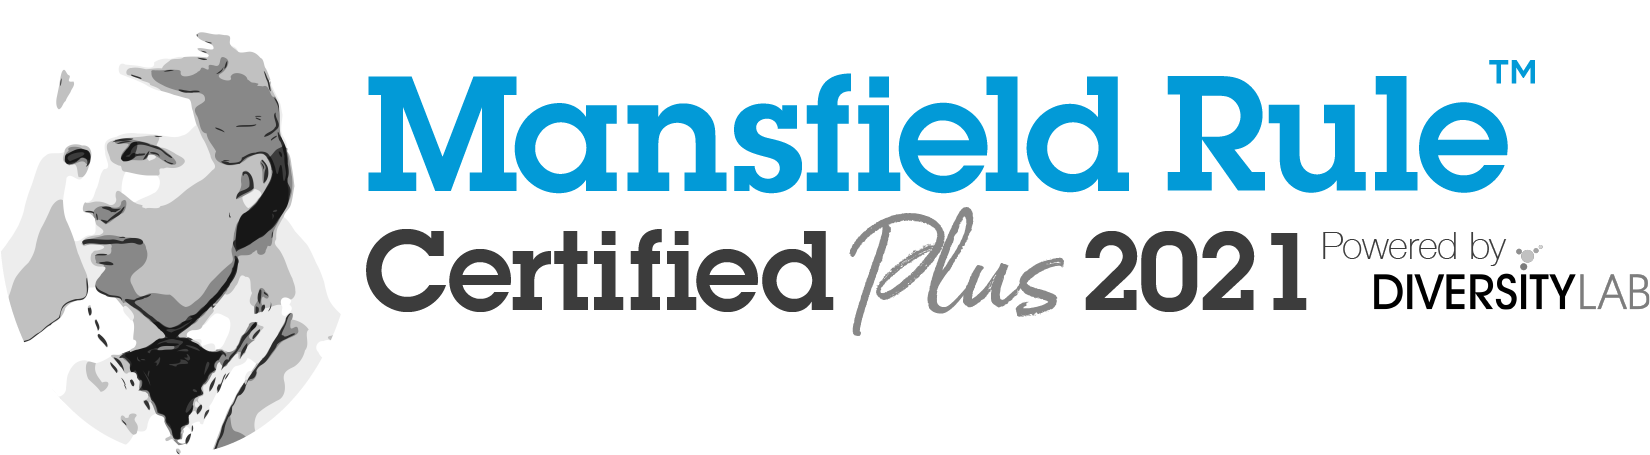 Mansfield Rule Certified Plus 2020